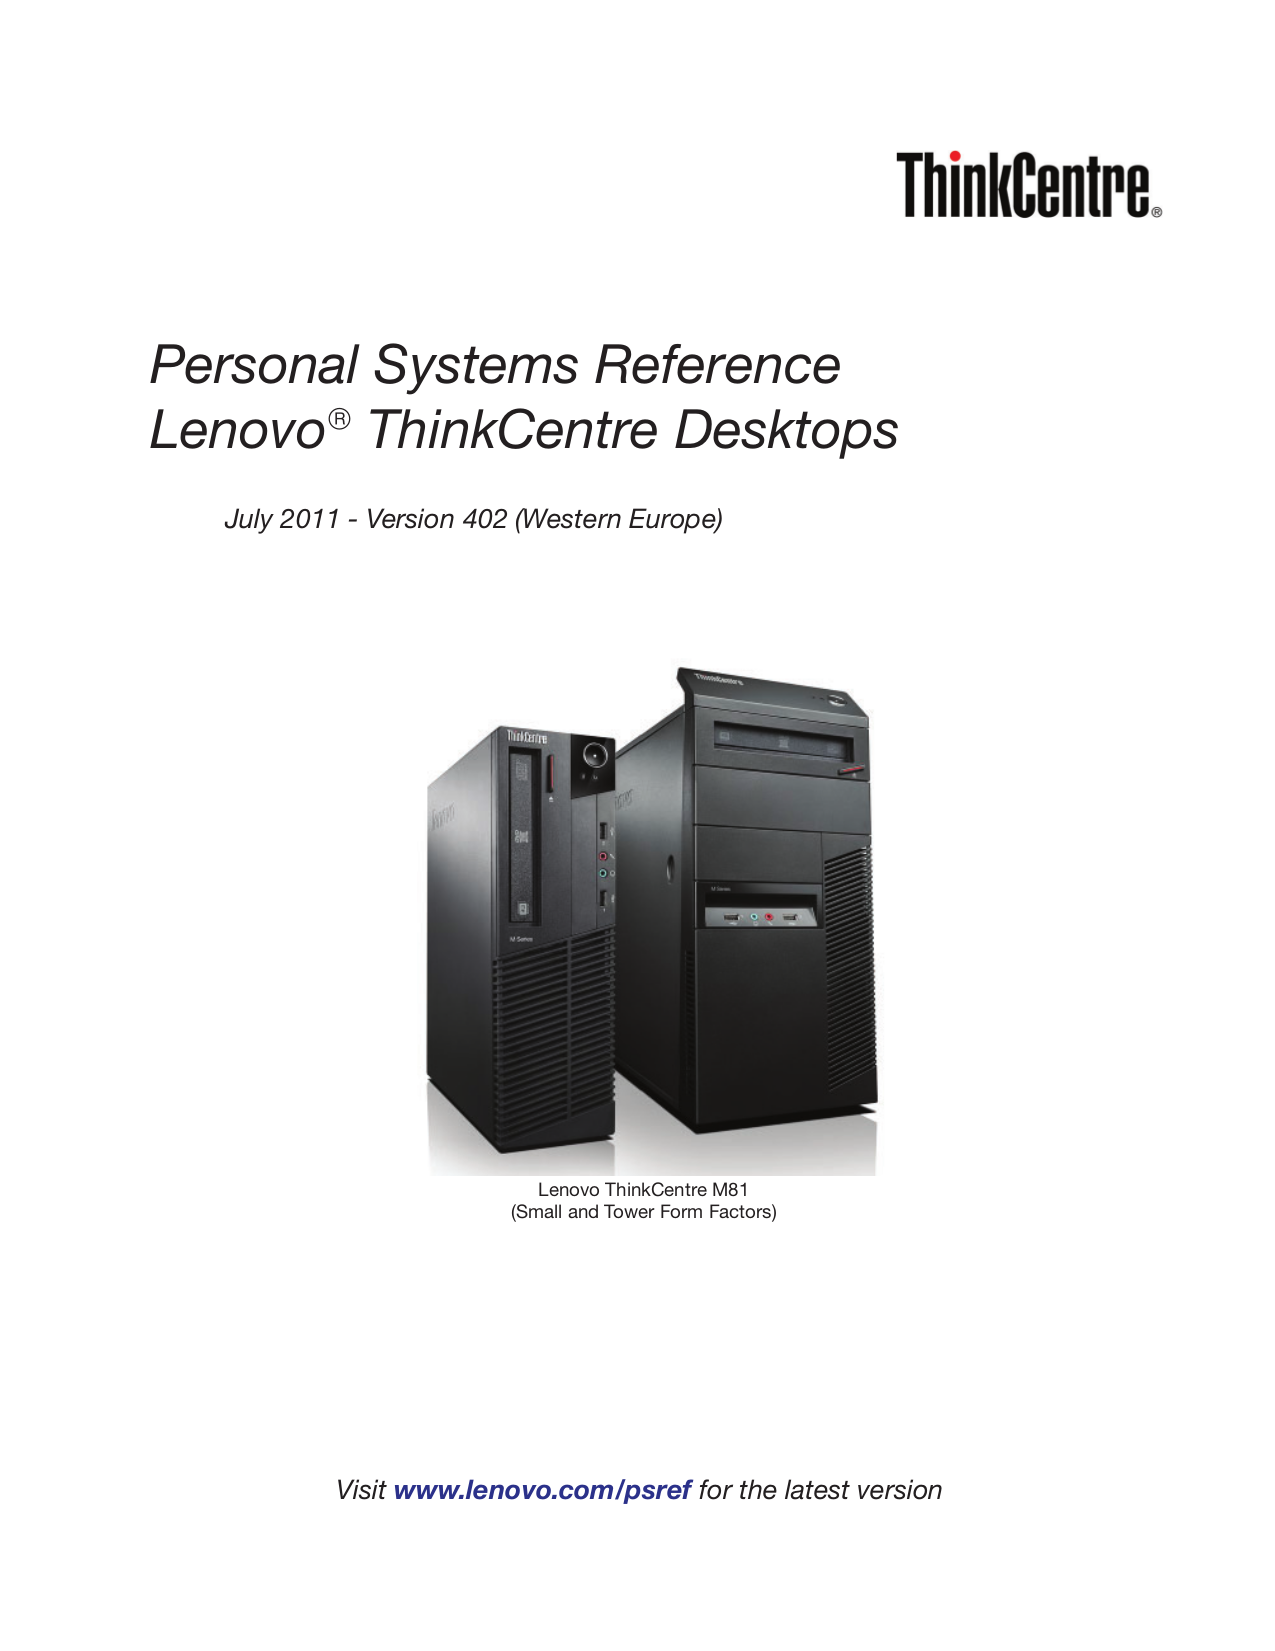 pdf for Lenovo Desktop ThinkCentre M81 5049 manual